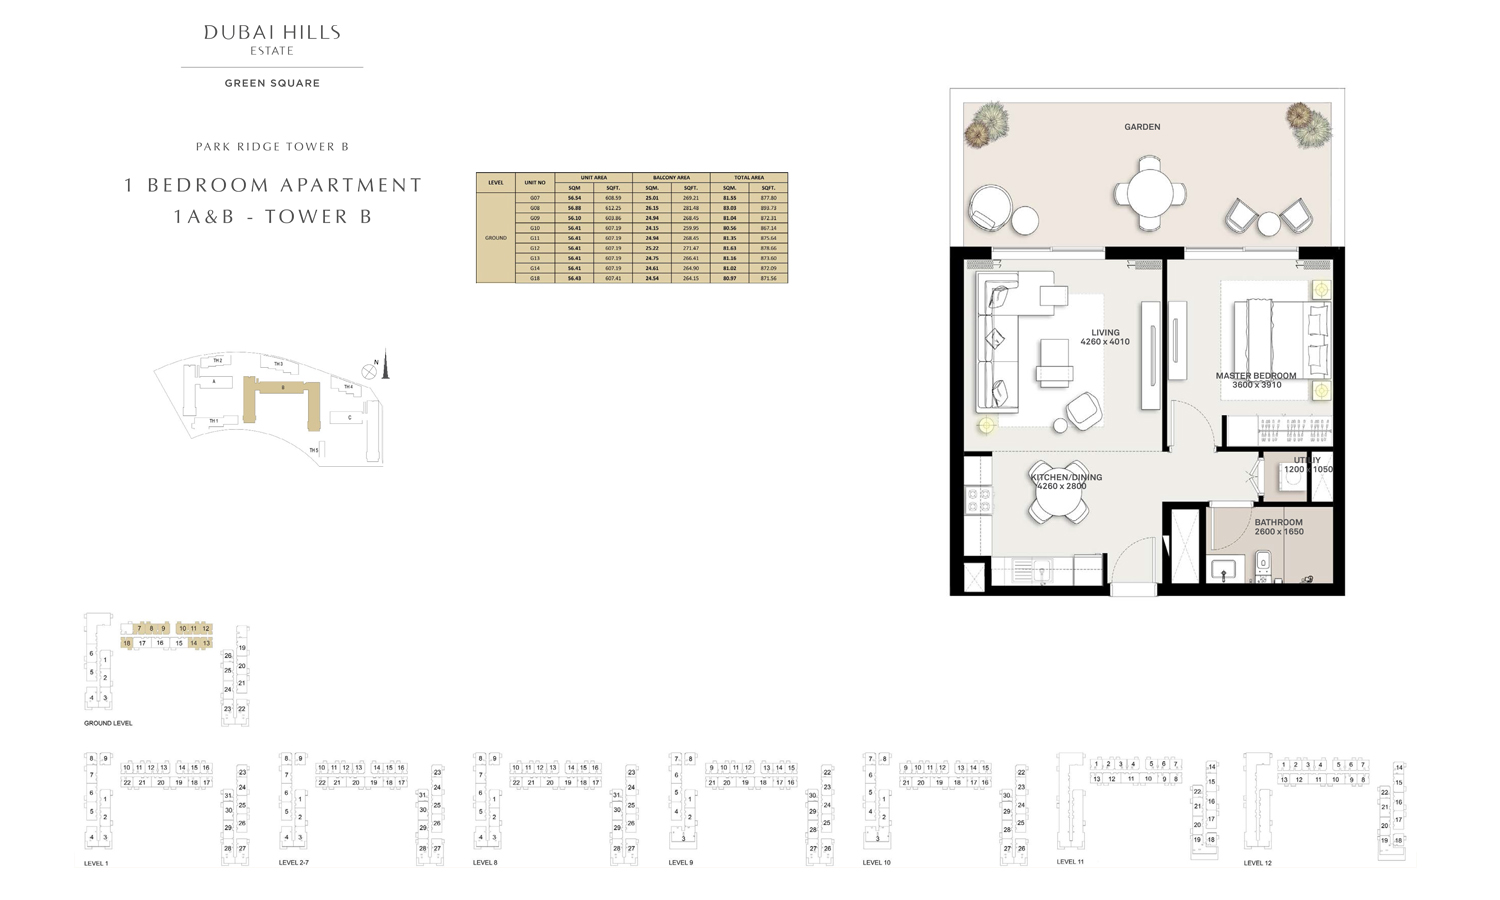 1 Bedroom Apartment 1 A & B - Tower B, Size 867 sq ft